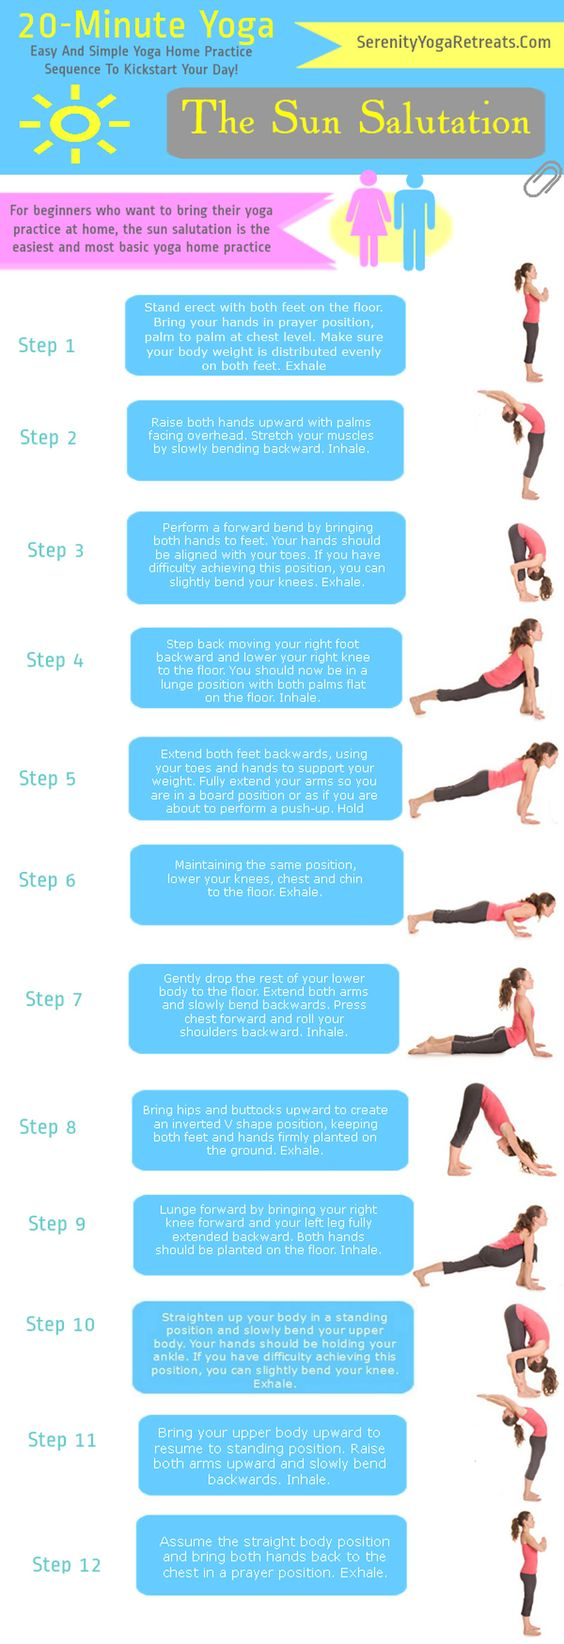 Yoga For Beginners -- The Sun Salutation. Perfect to do one after the other